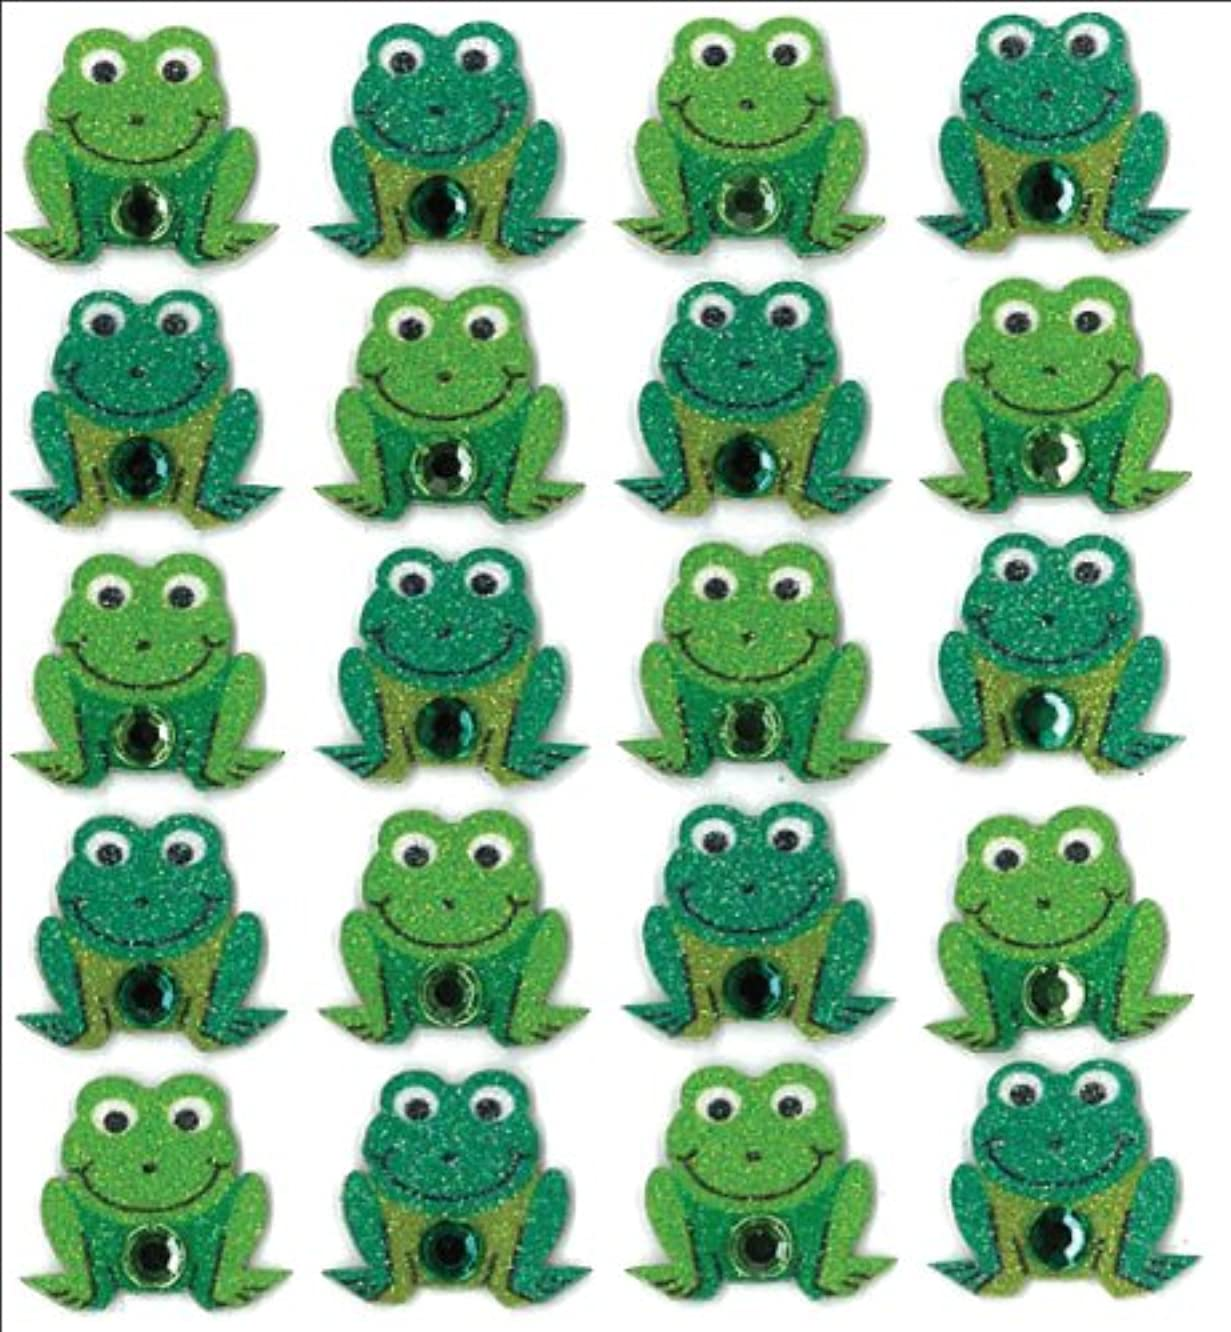 Jolee's Boutique Repeat Sticker Frogs (50-20747)